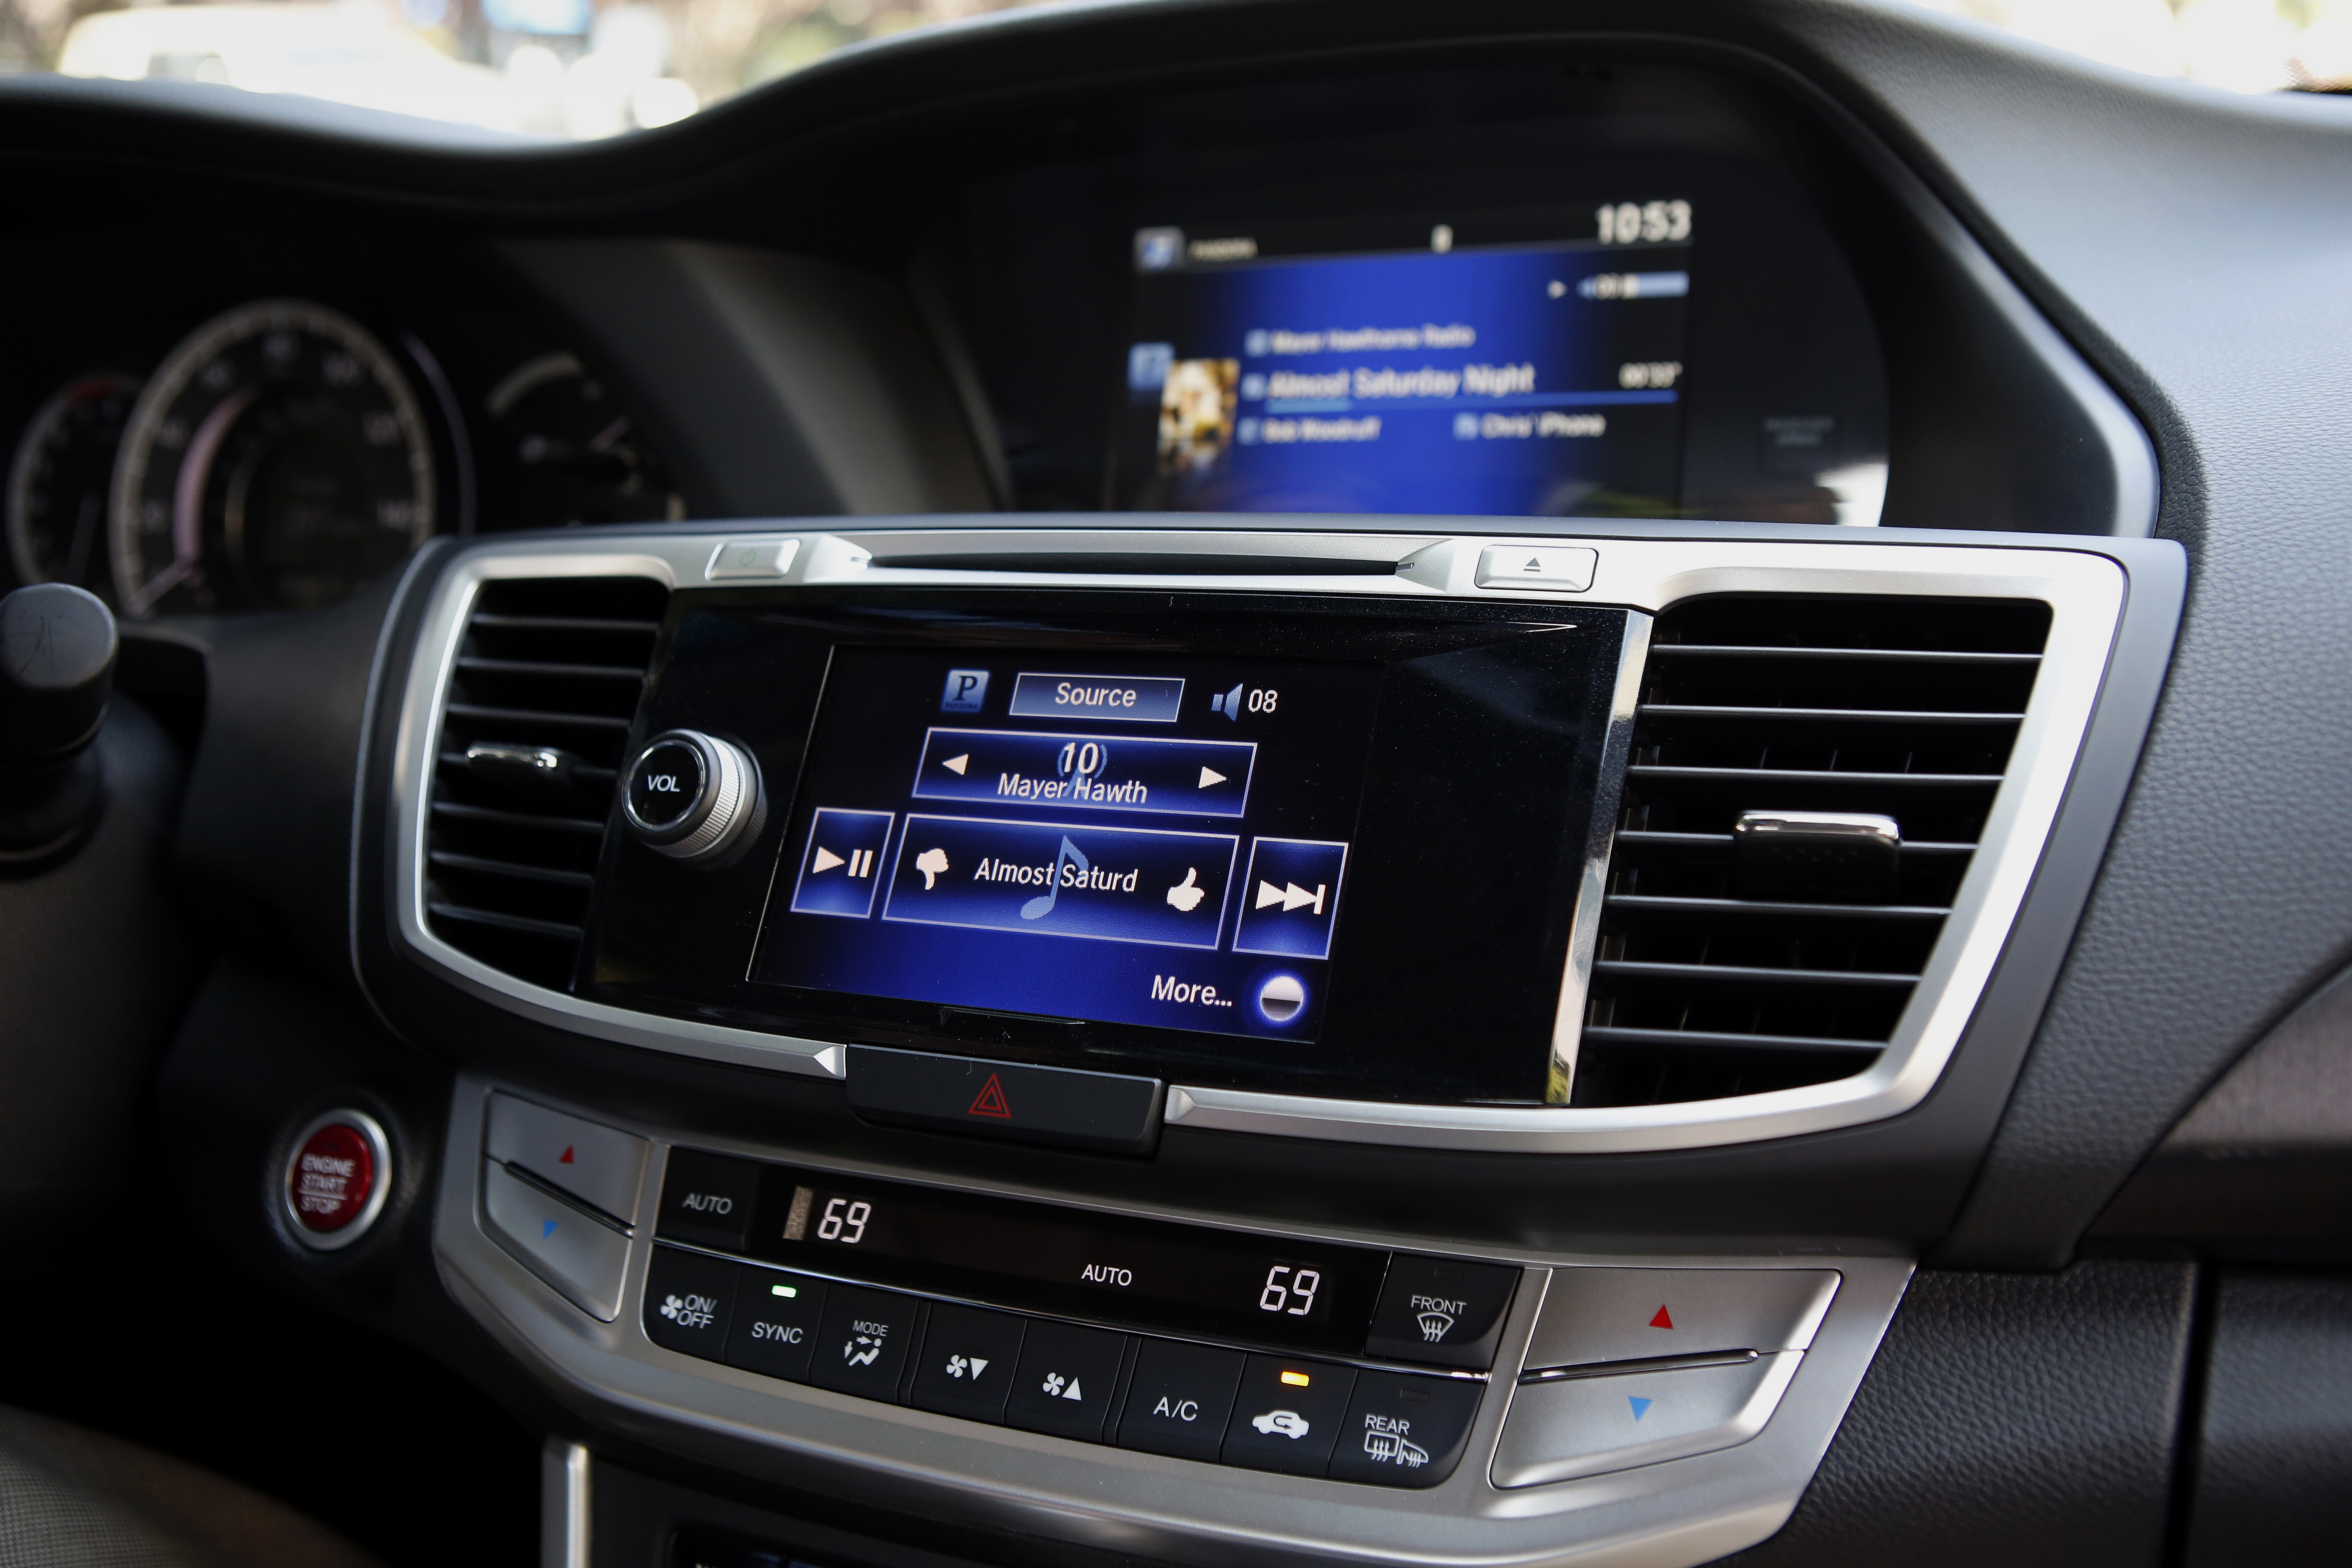 The Pandora integrated entertainment system is demonstrated inside a Honda Accord.